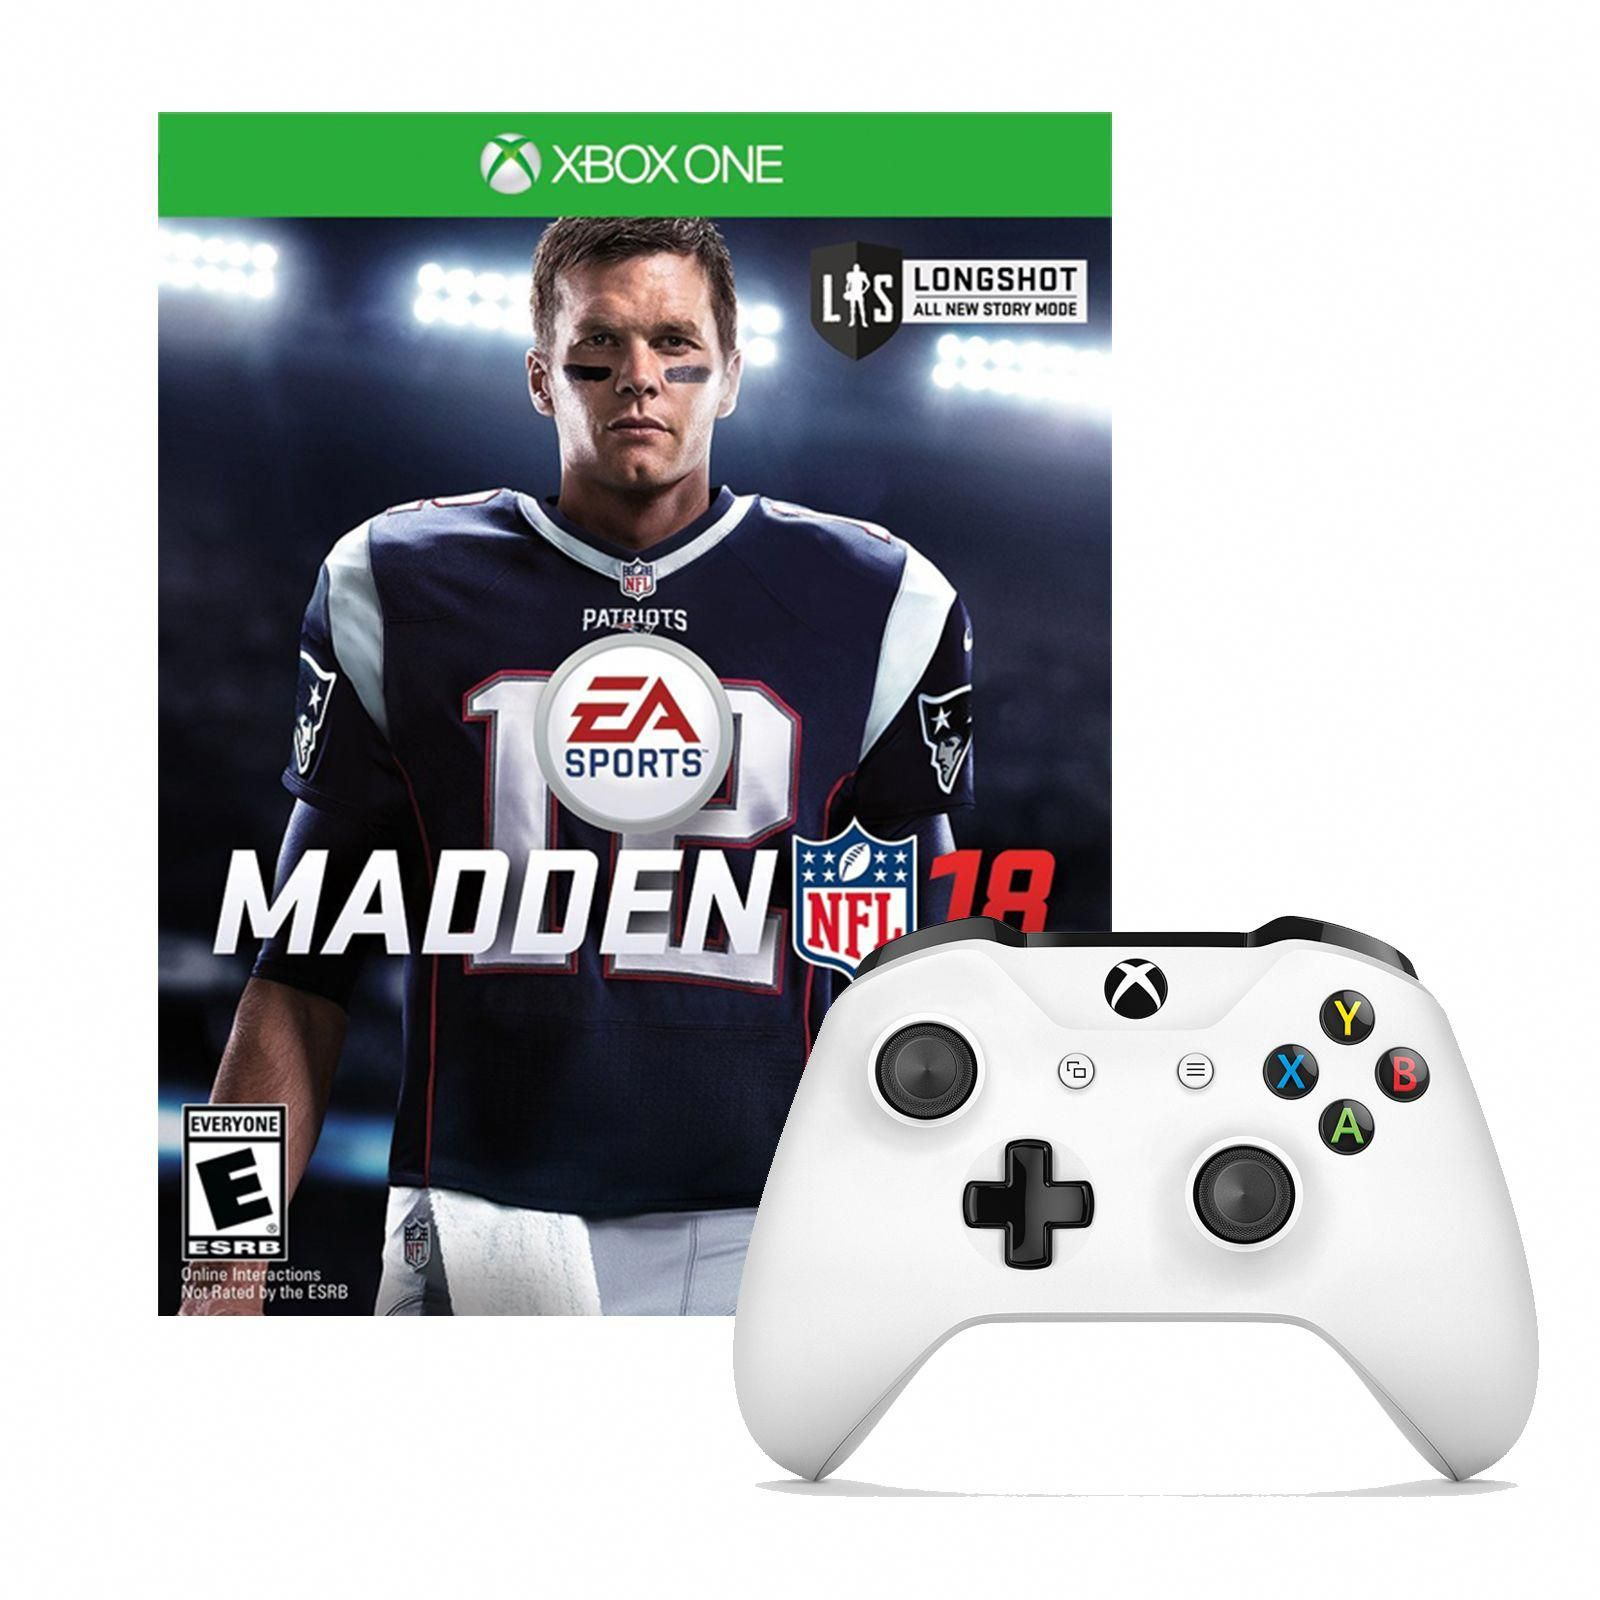 Microsoft Xbox One Controller In White With Madden Nfl18 Xboxoriginal Xbox One Controller Xbox One Xbox